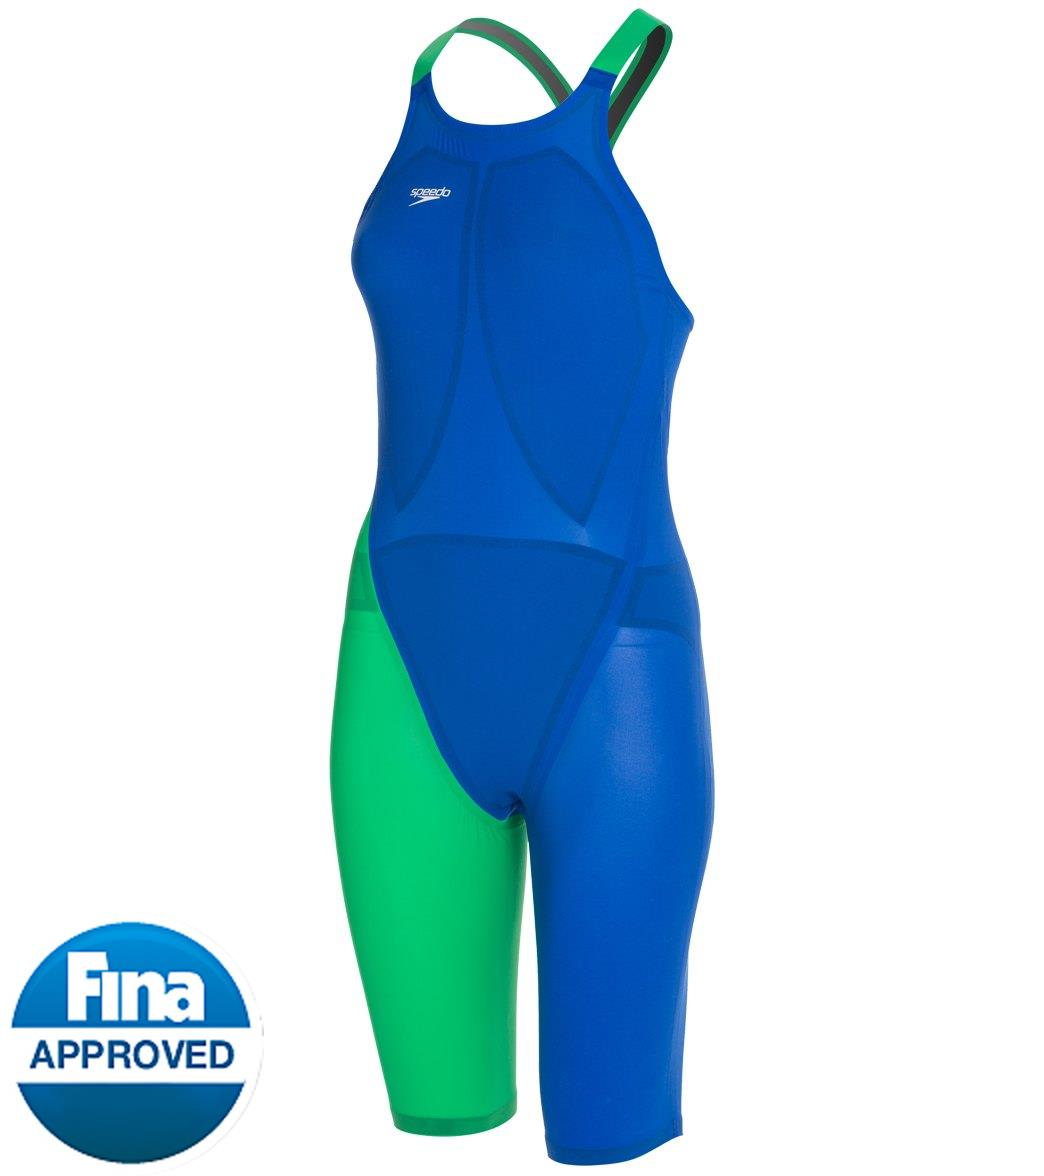 Speedo LZR Elite 2 Women's Tech Suit